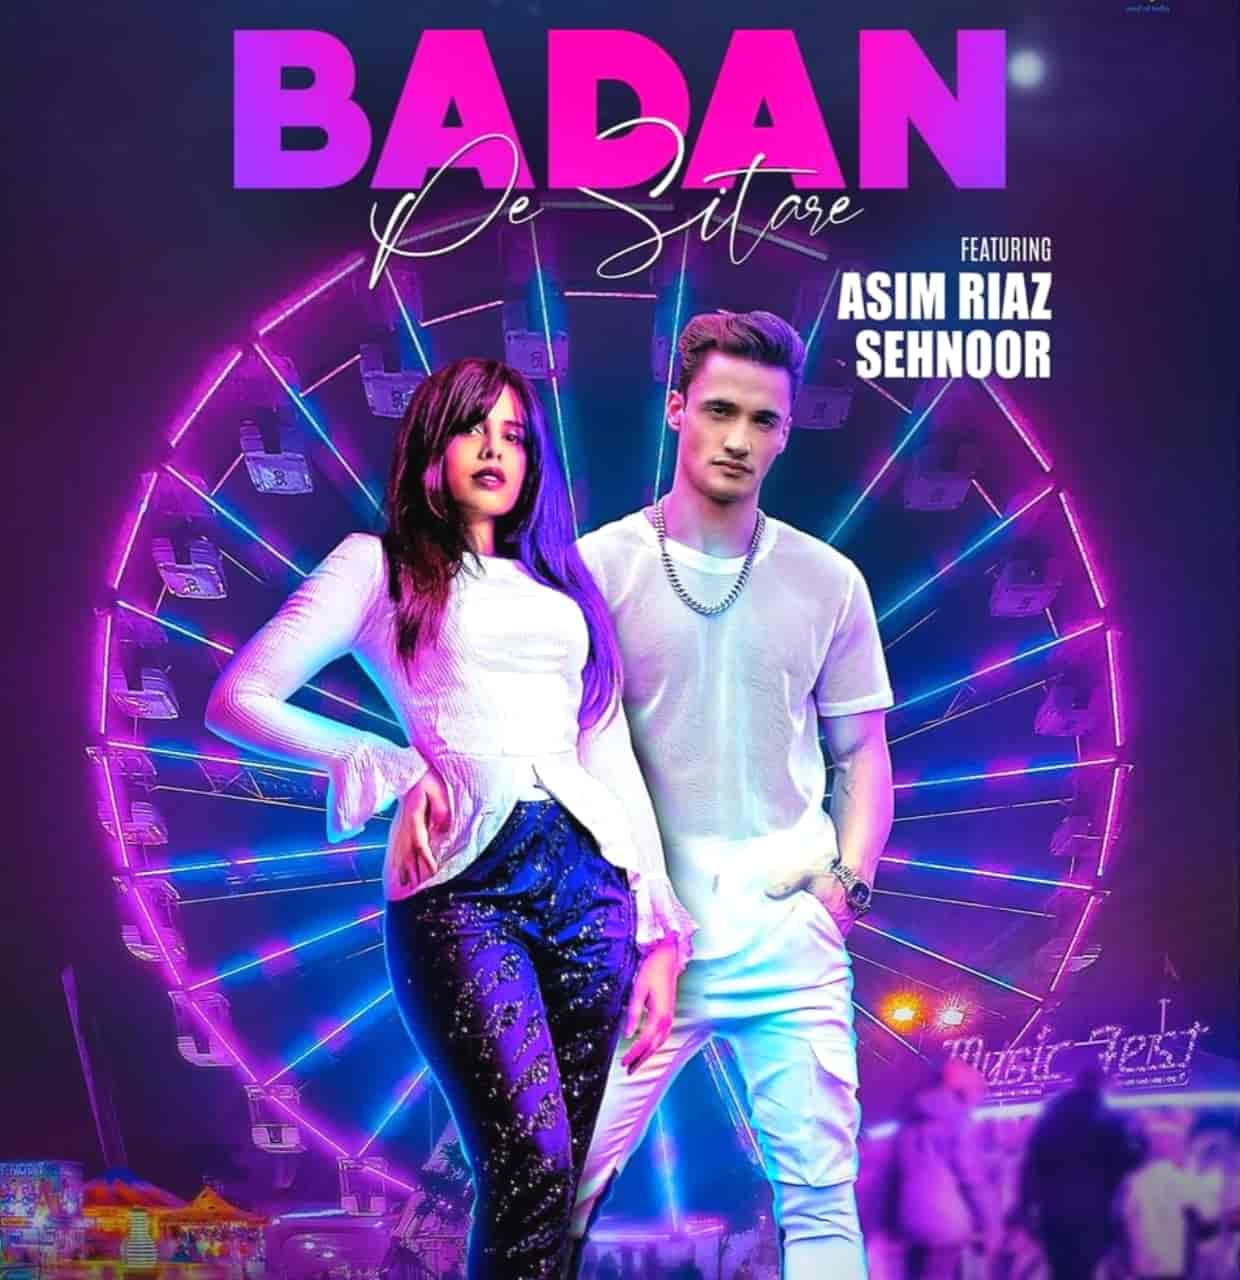 Badan Pe Sitare Hindi Song Image Features Asim Riaz and Sehnoor